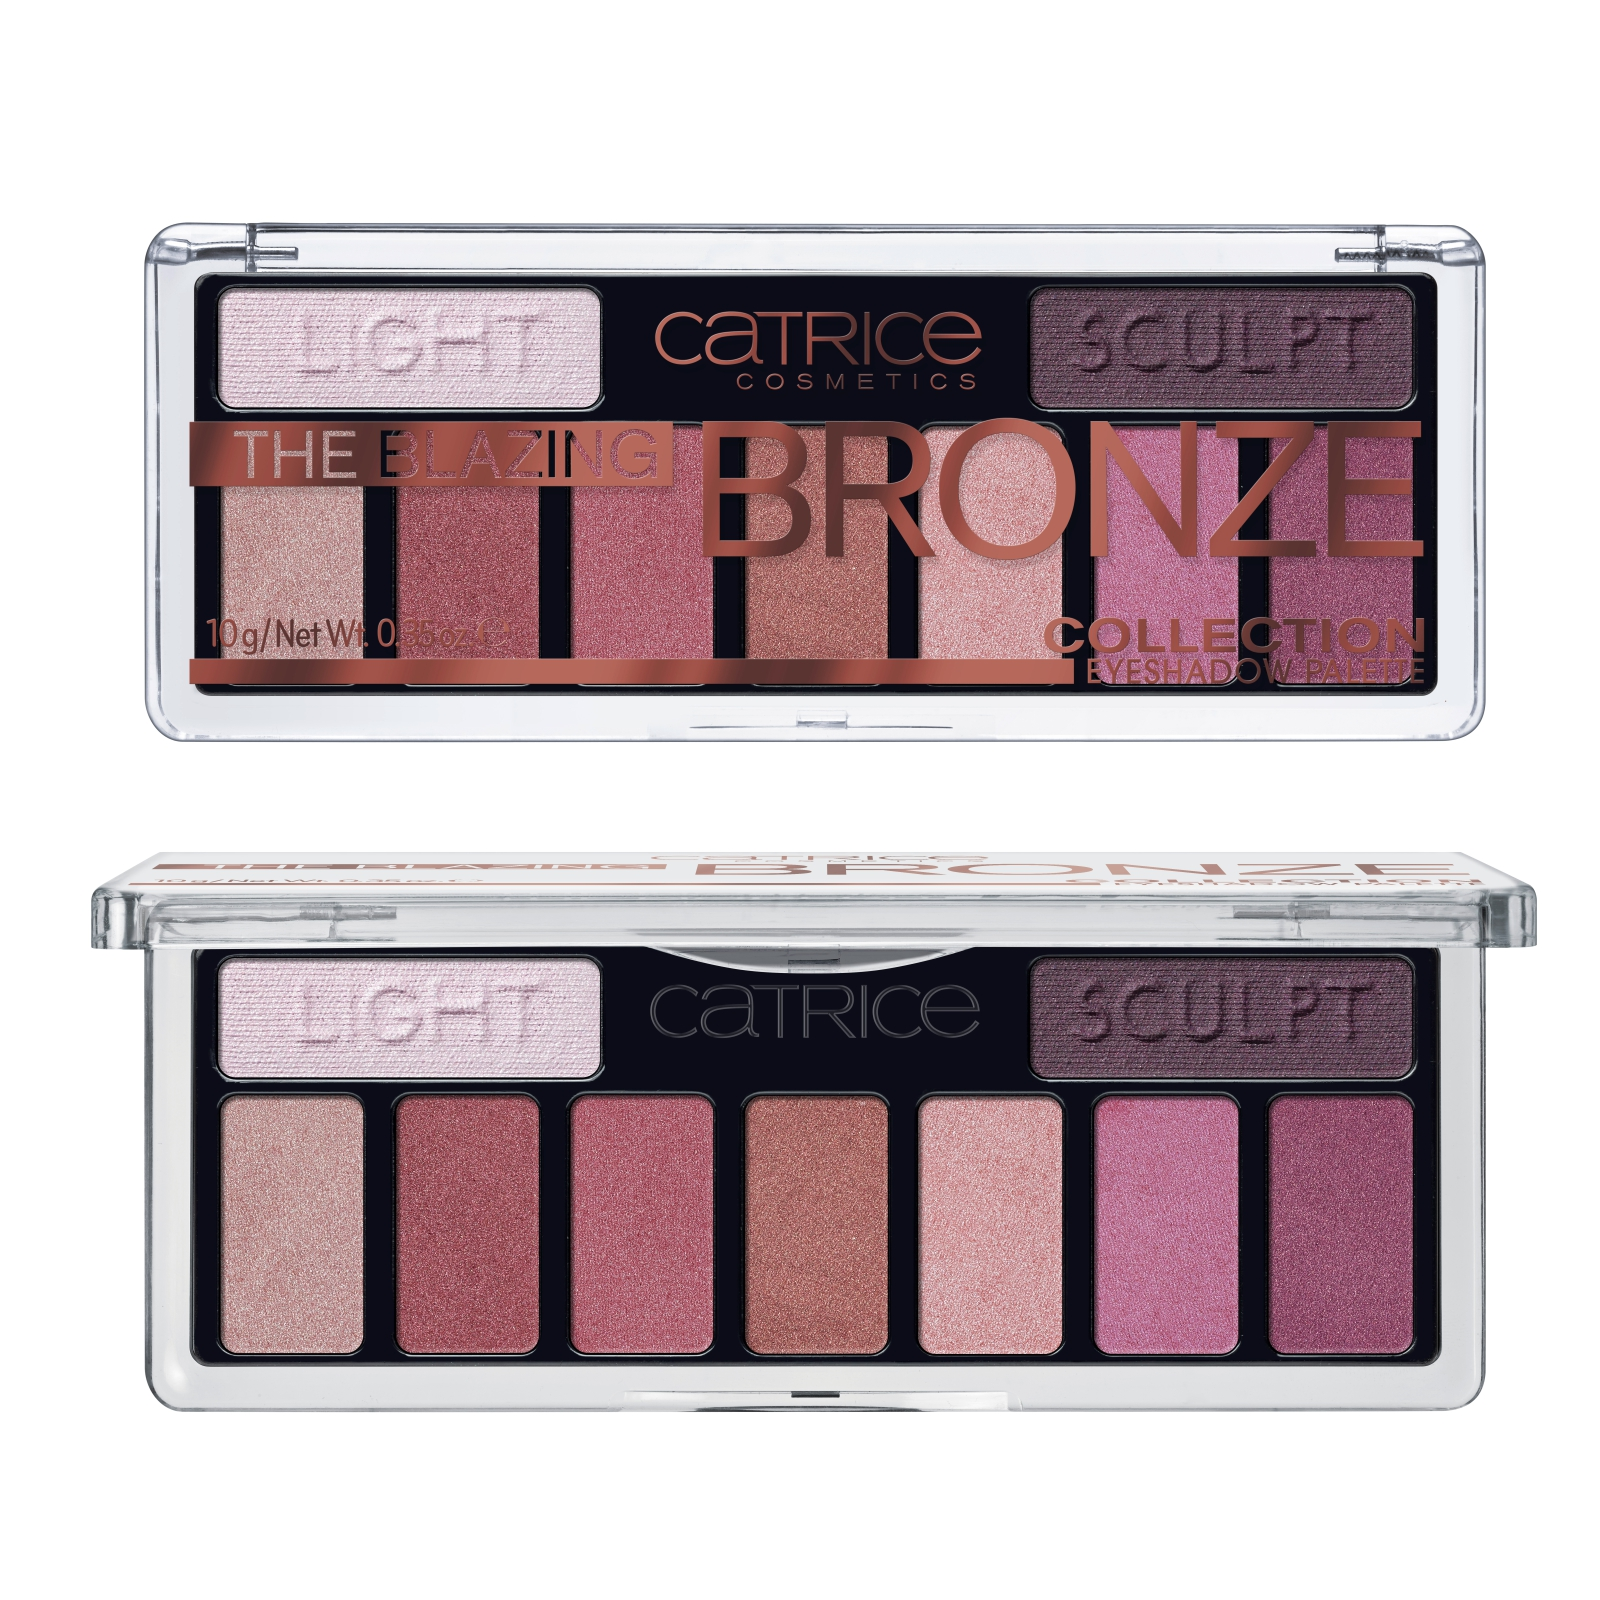 Cartier The Blazing Bronze Collection Eyeshadow Palette